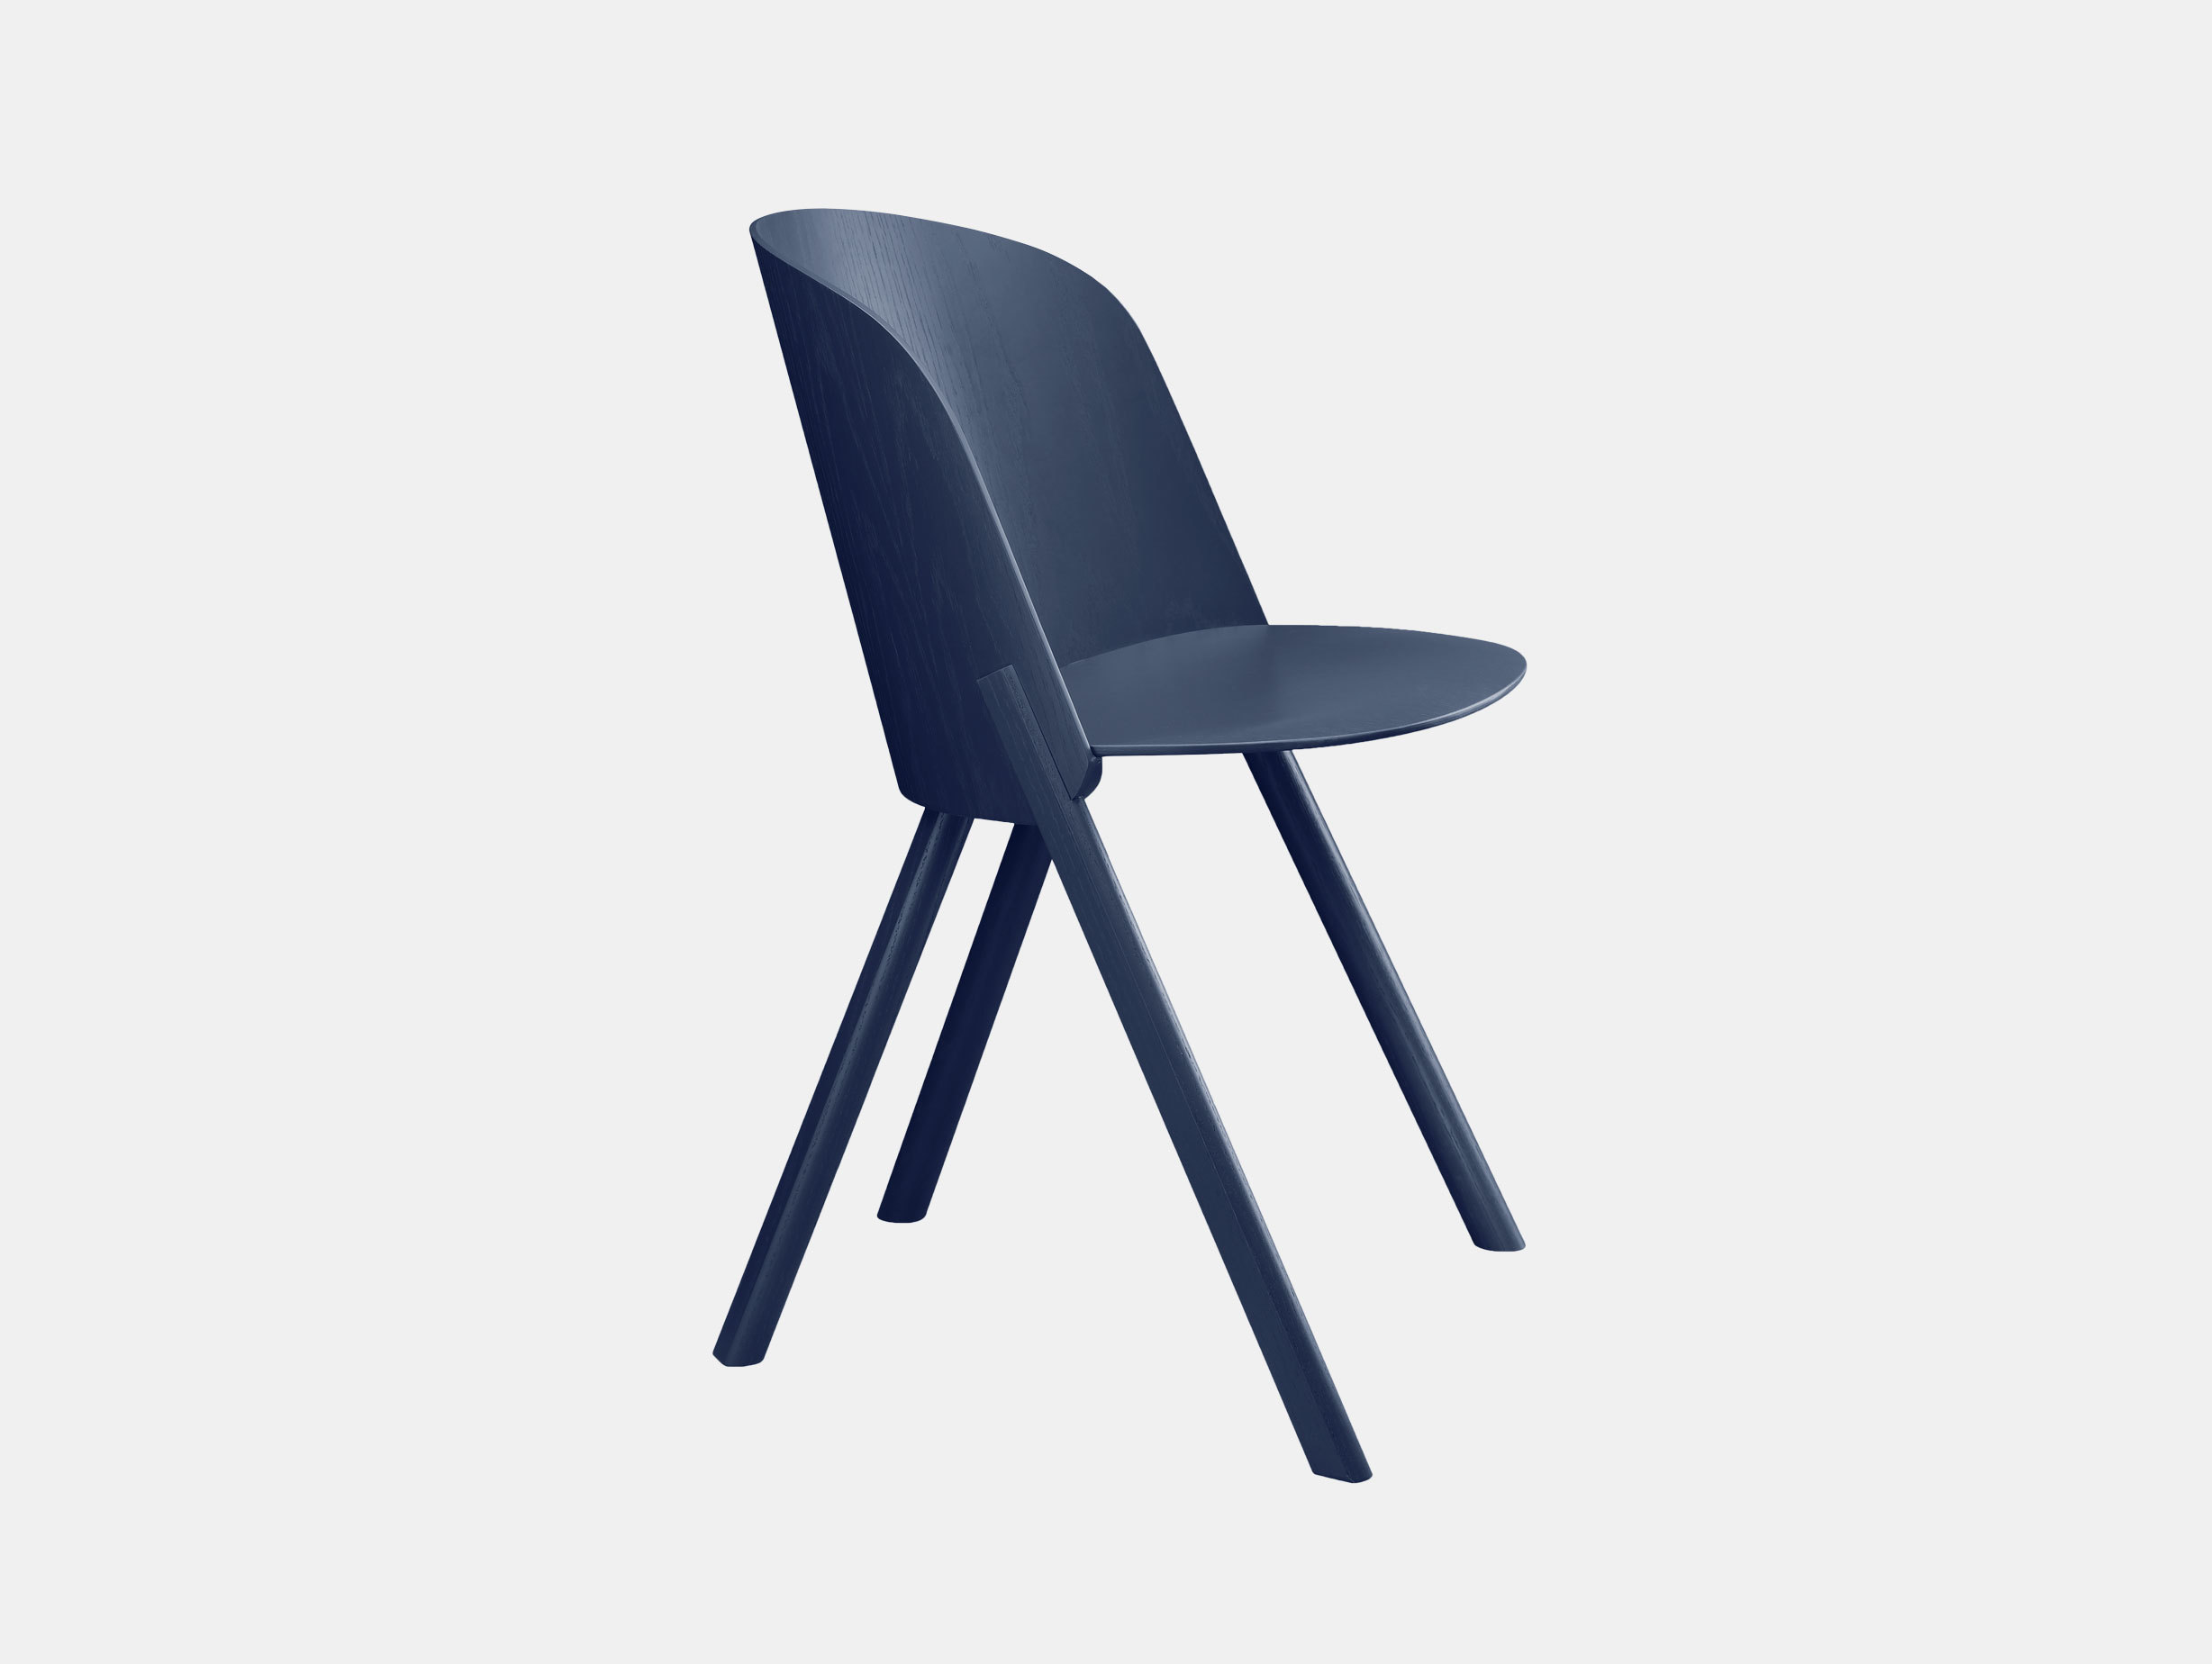 This Chair image 5